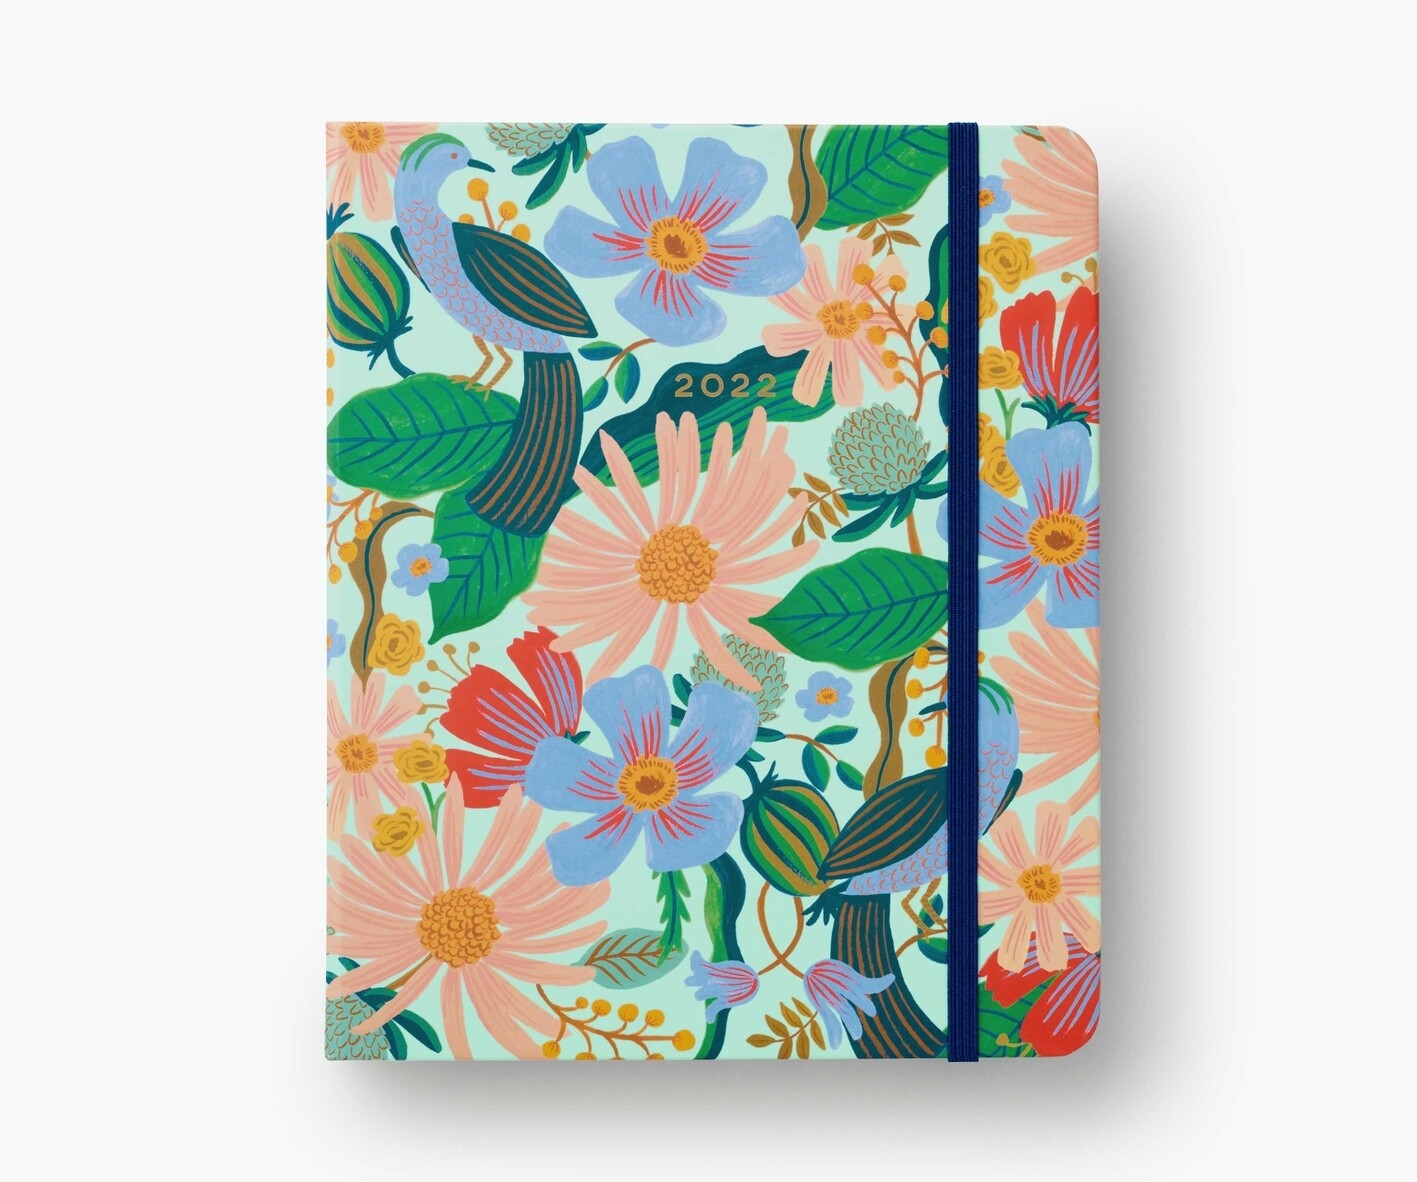 Rifle Paper Co - 2022 17-Month Covered Binder Planner - Dovecote